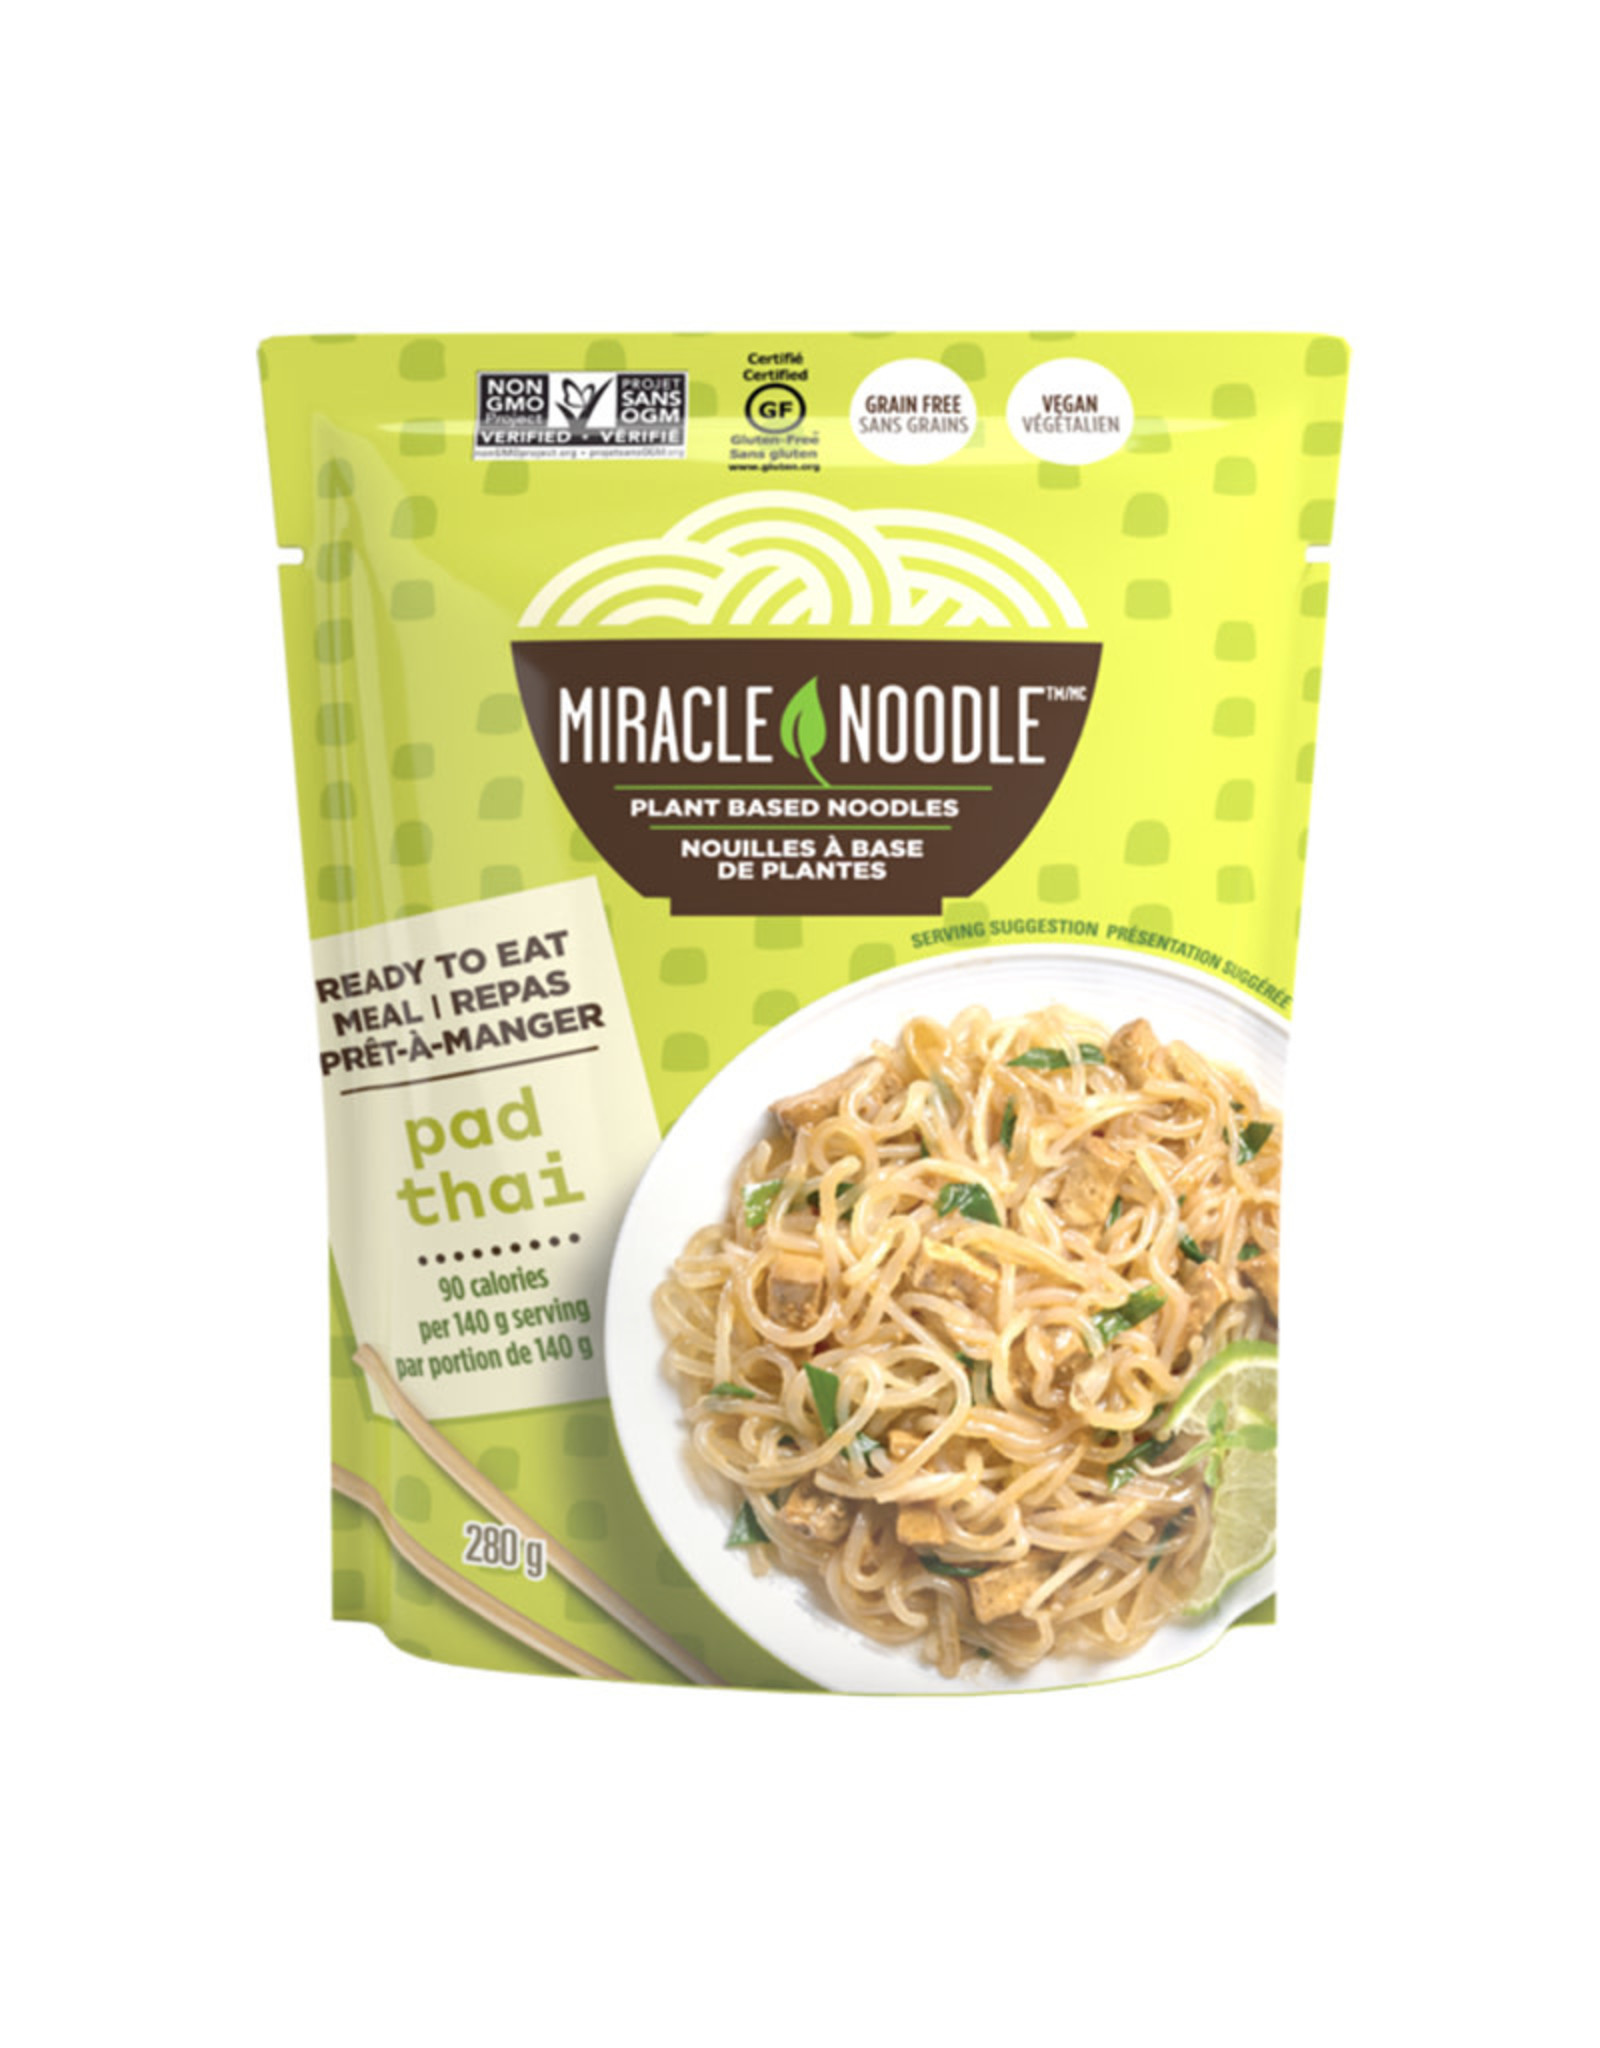 Miracle Noodle Kitchen Miracle Noodle - Ready-to-Eat, Pad Thai